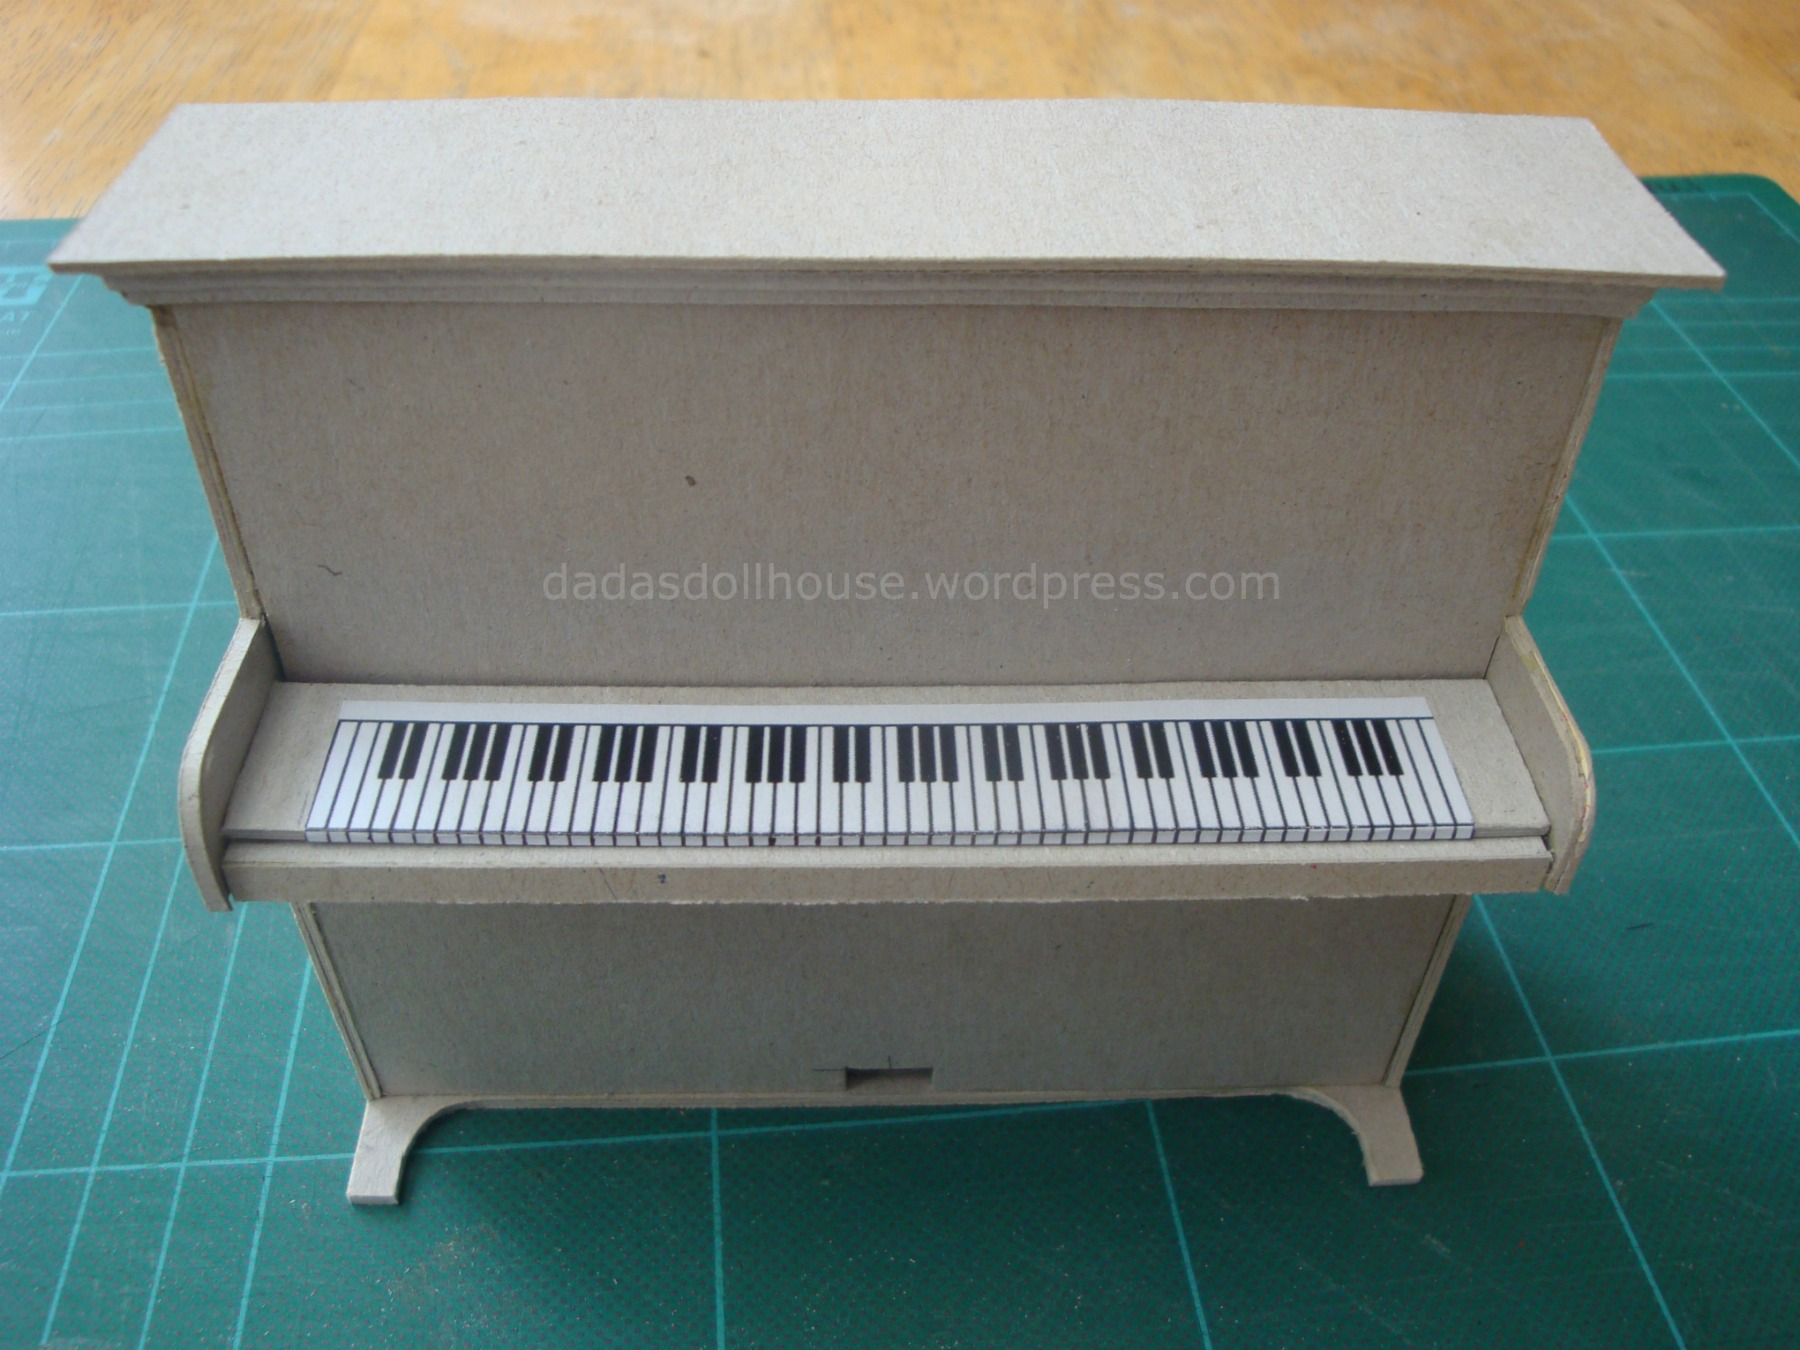 Arredare Con Pianoforte Verticale Il Pianoforte Verticale La Tastiera The Upright Piano The